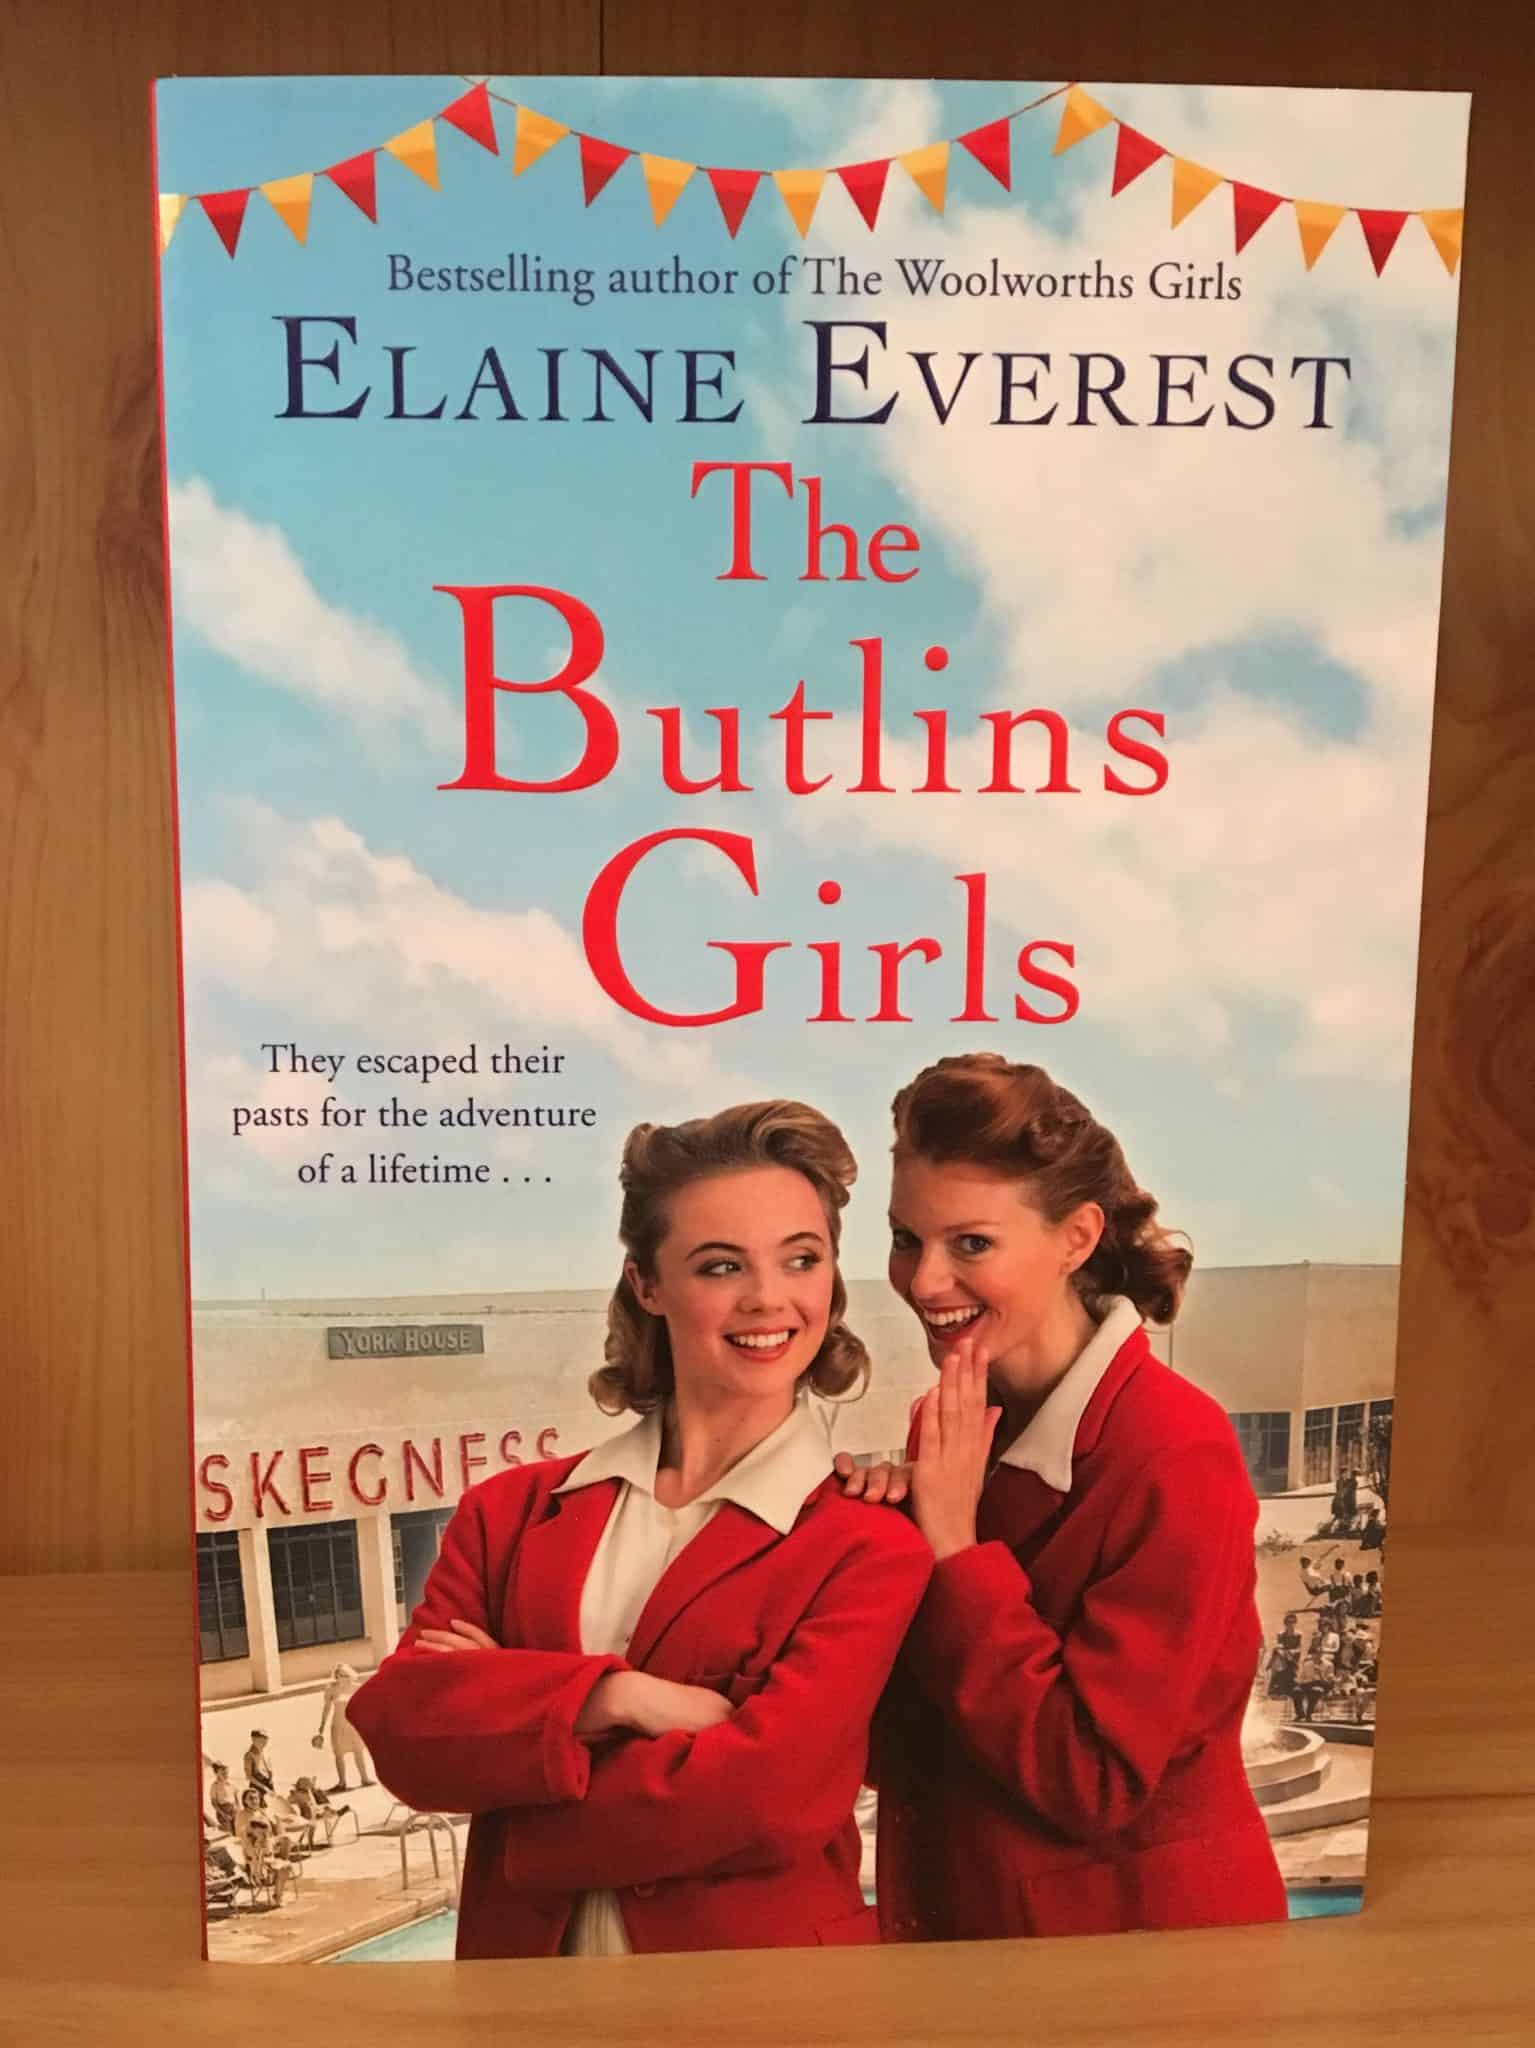 The Butlins Girls by Elaine Everest review and giveaway